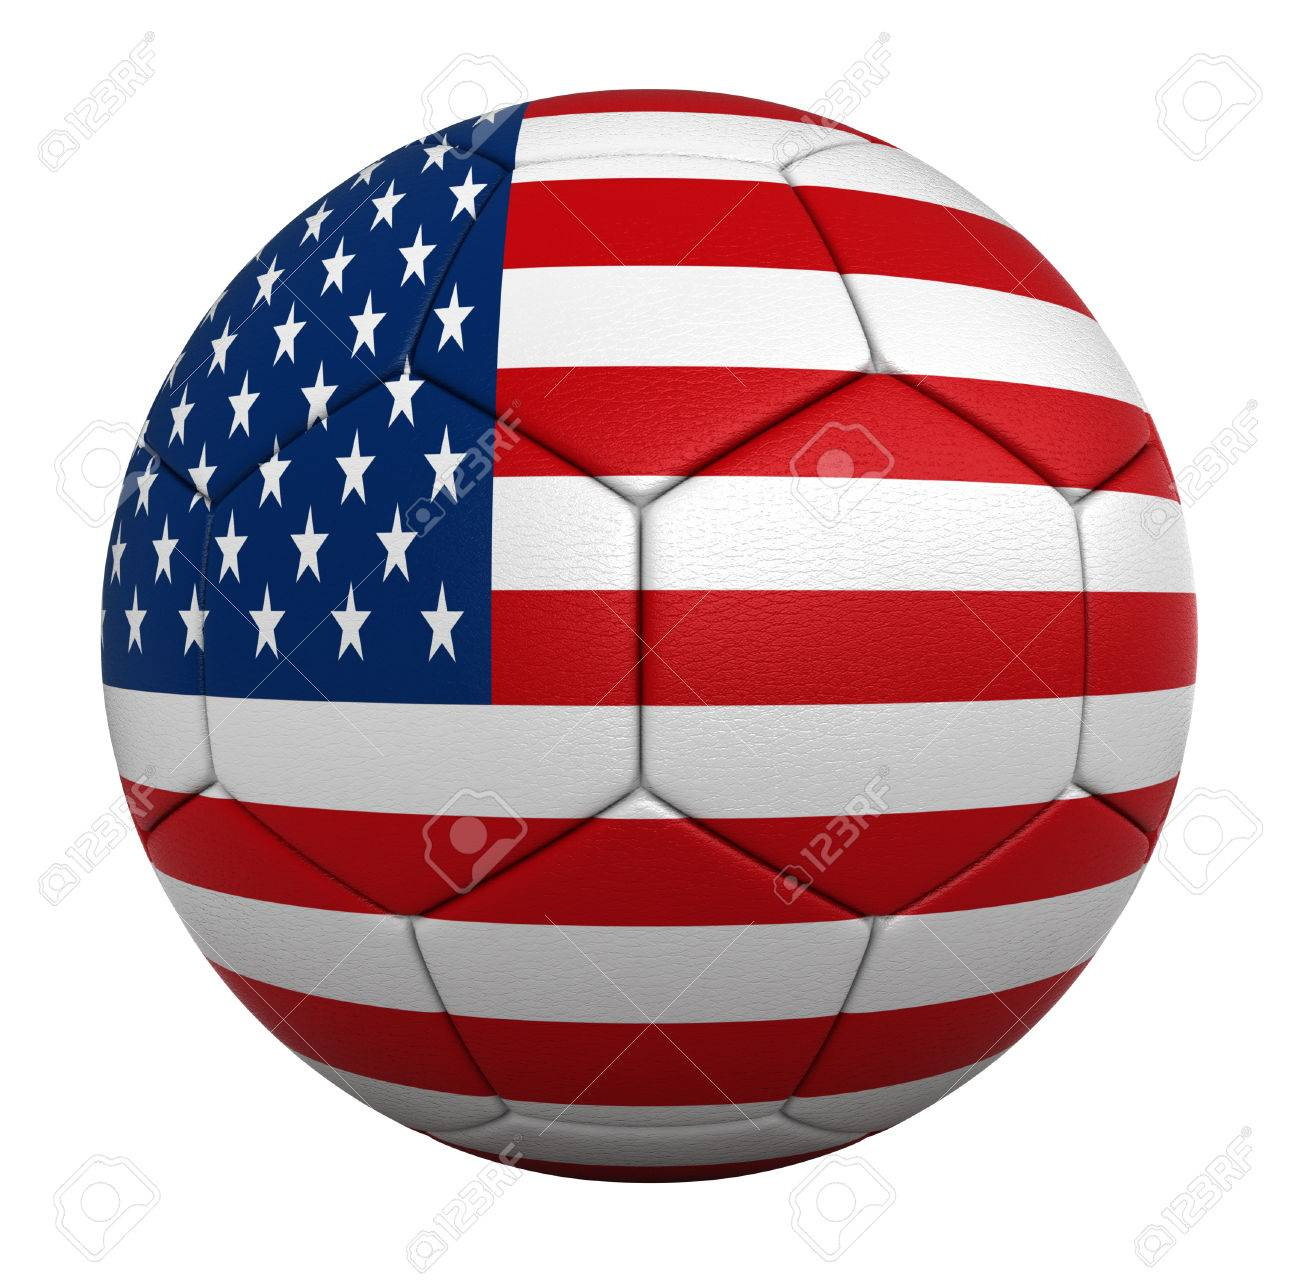 3d Rendesr Of Soccer Balls With Usa National Flags Stock Photo